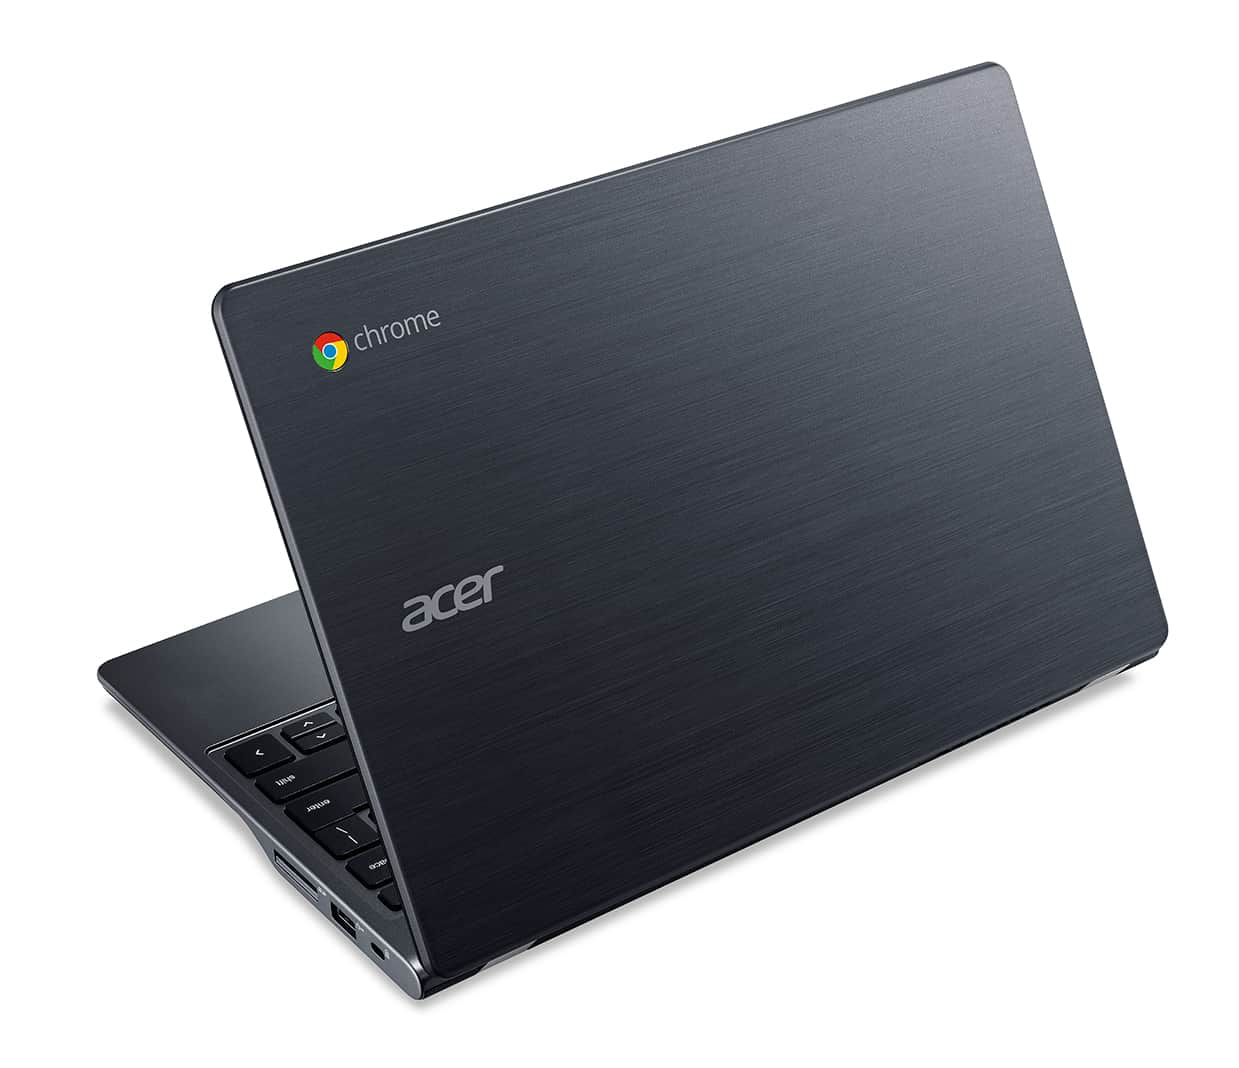 Acer C740 Chromebook rear left facing